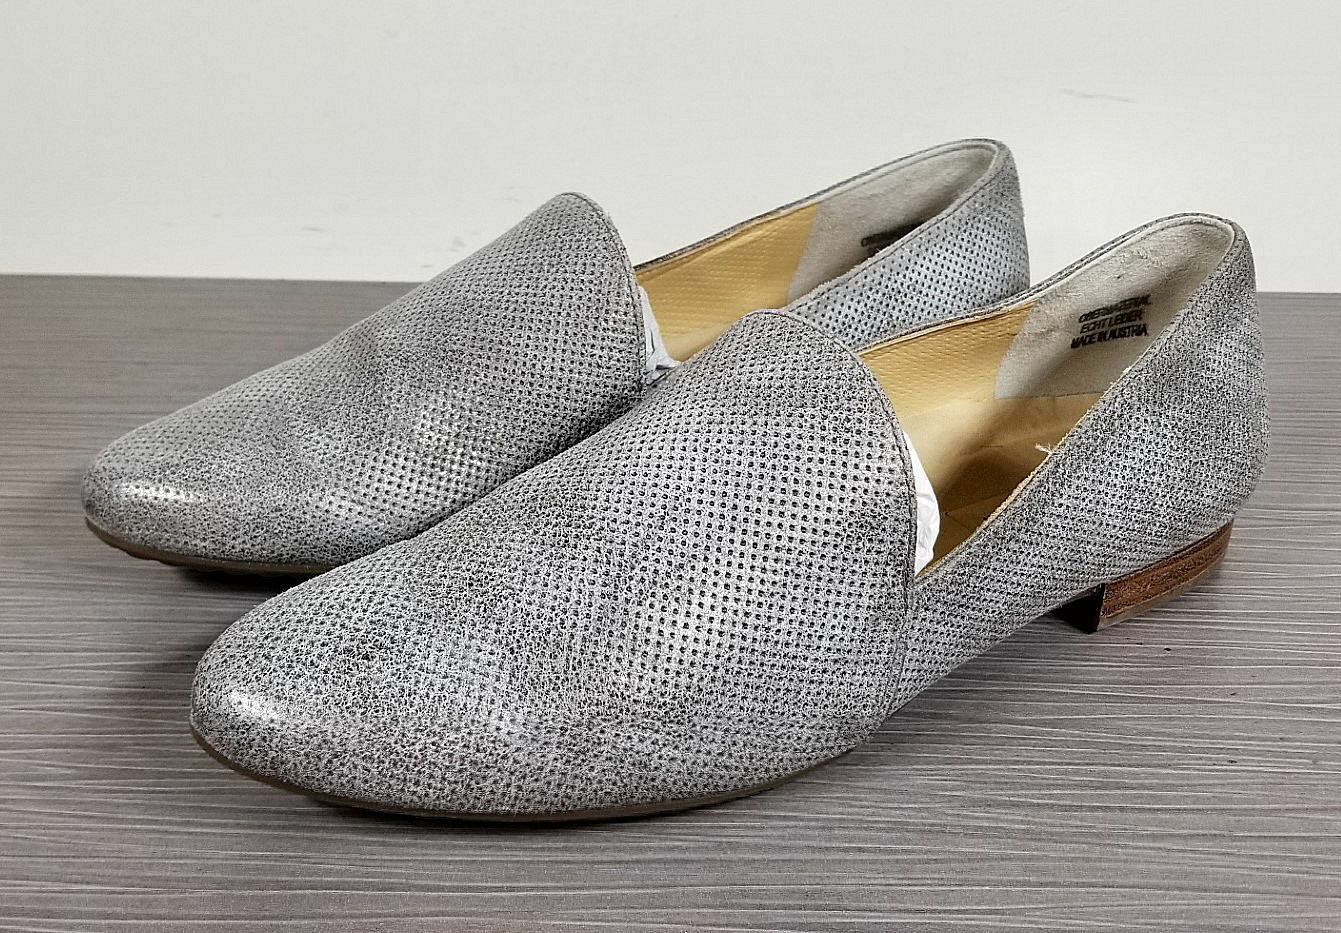 Paul Green Naomi Naomi Green Loafer, Smoke Perforated Leather, Womens Size 7 US / 4.5 UK e0f901